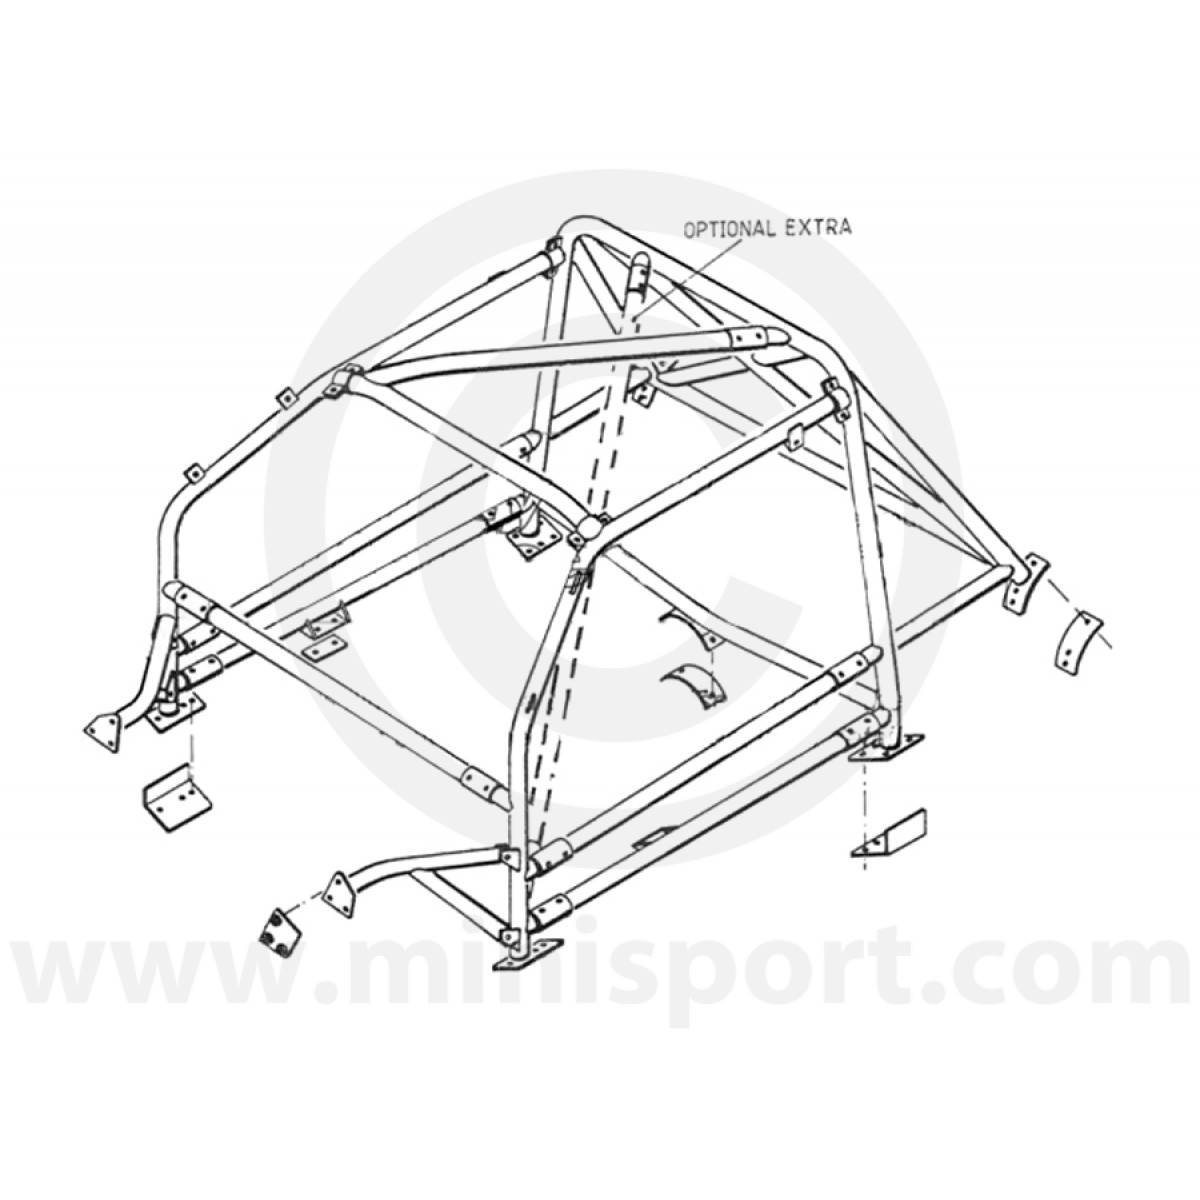 Rbn046 Mini Miultipoint Bolt In Roll Cage Safety Devices